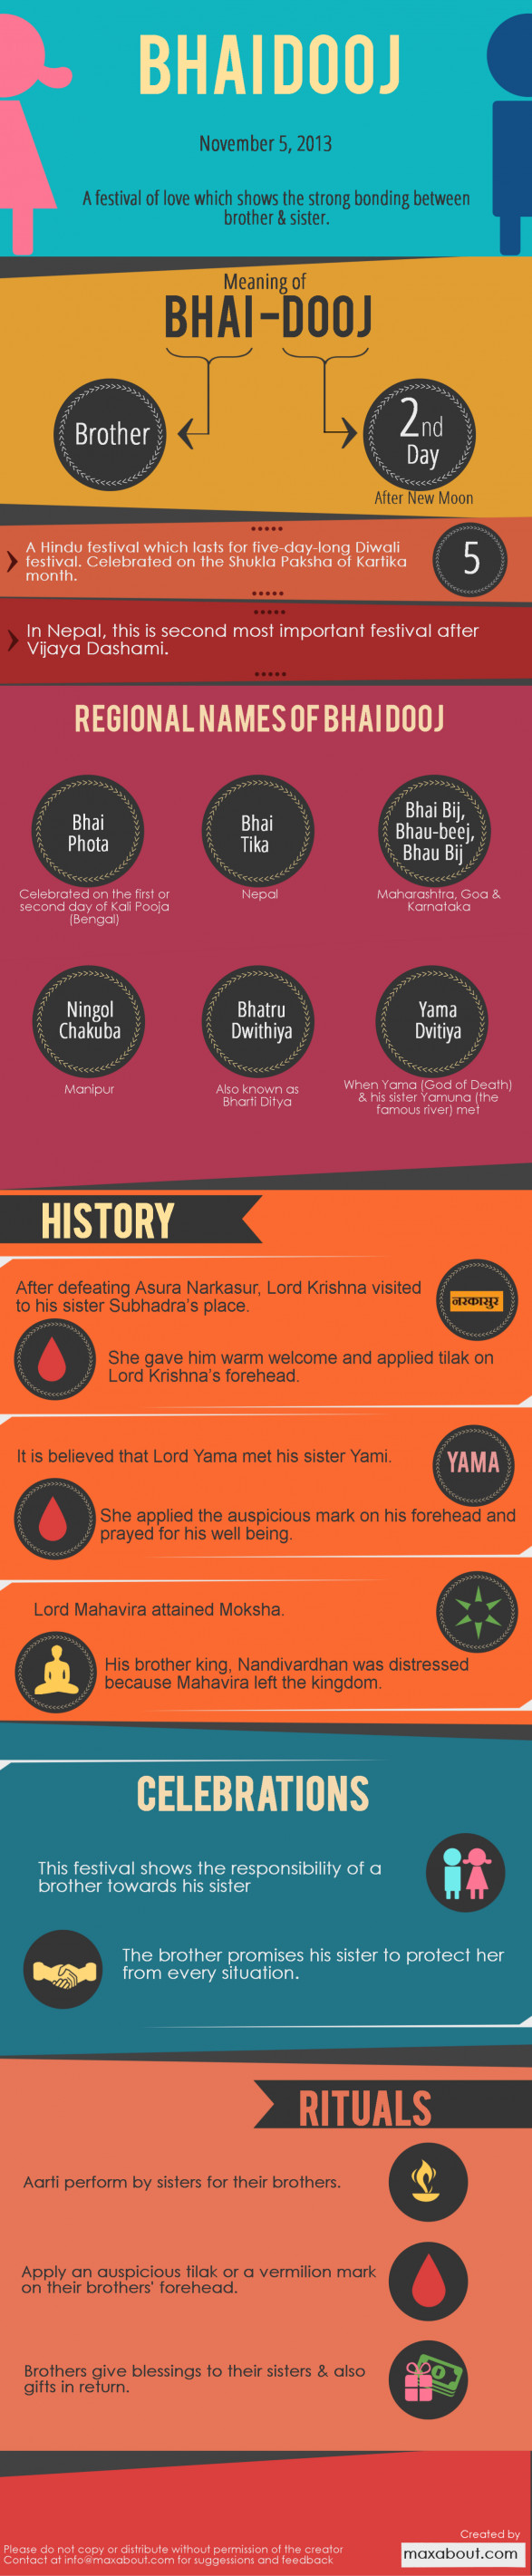 Interesting Facts About Bhai Dooj!